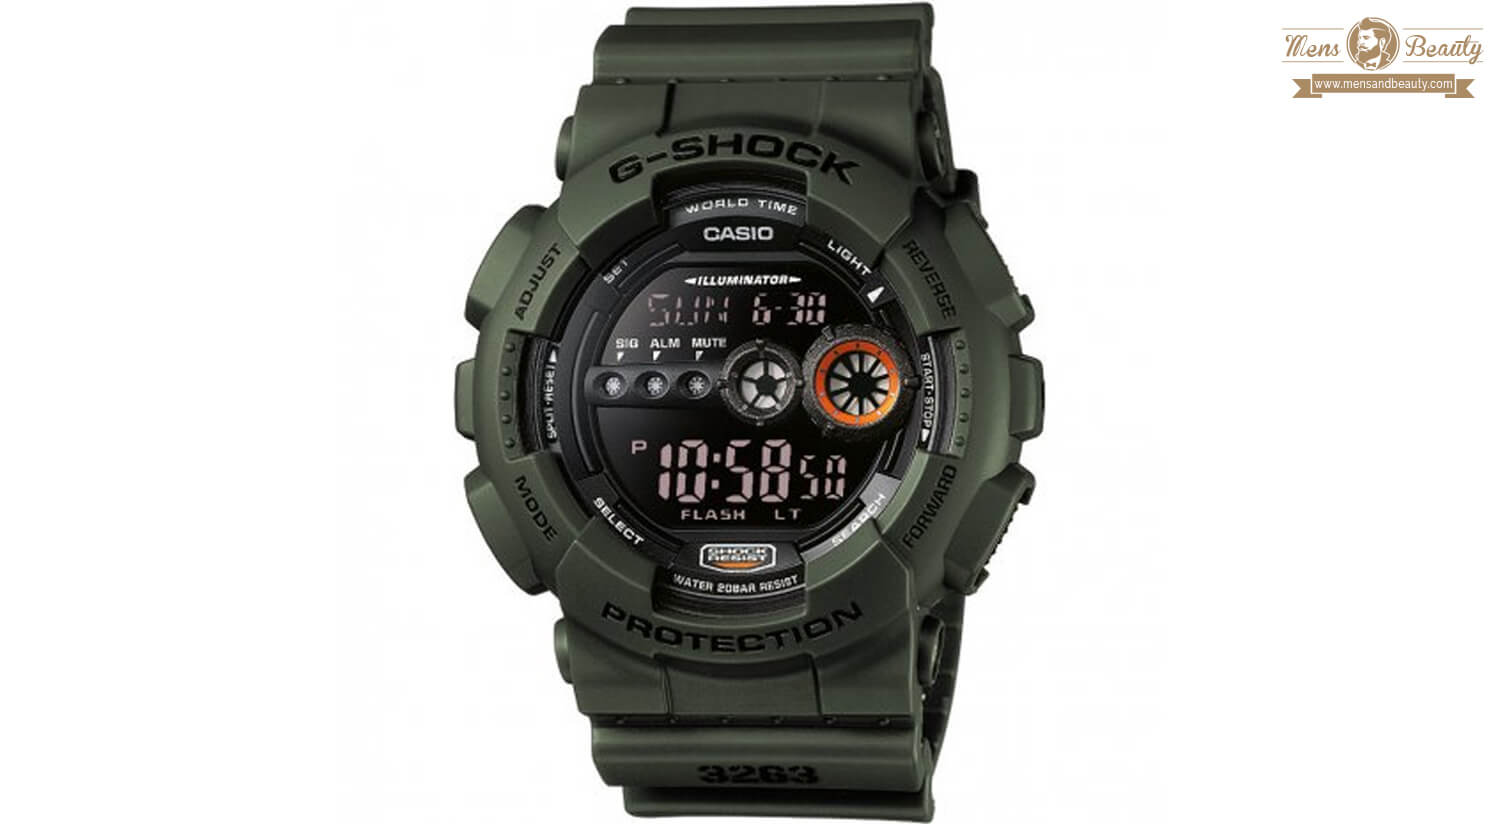 mejores relojes digitales hombre calidad baratos g shock classic style gd 100ms 3er military stealth